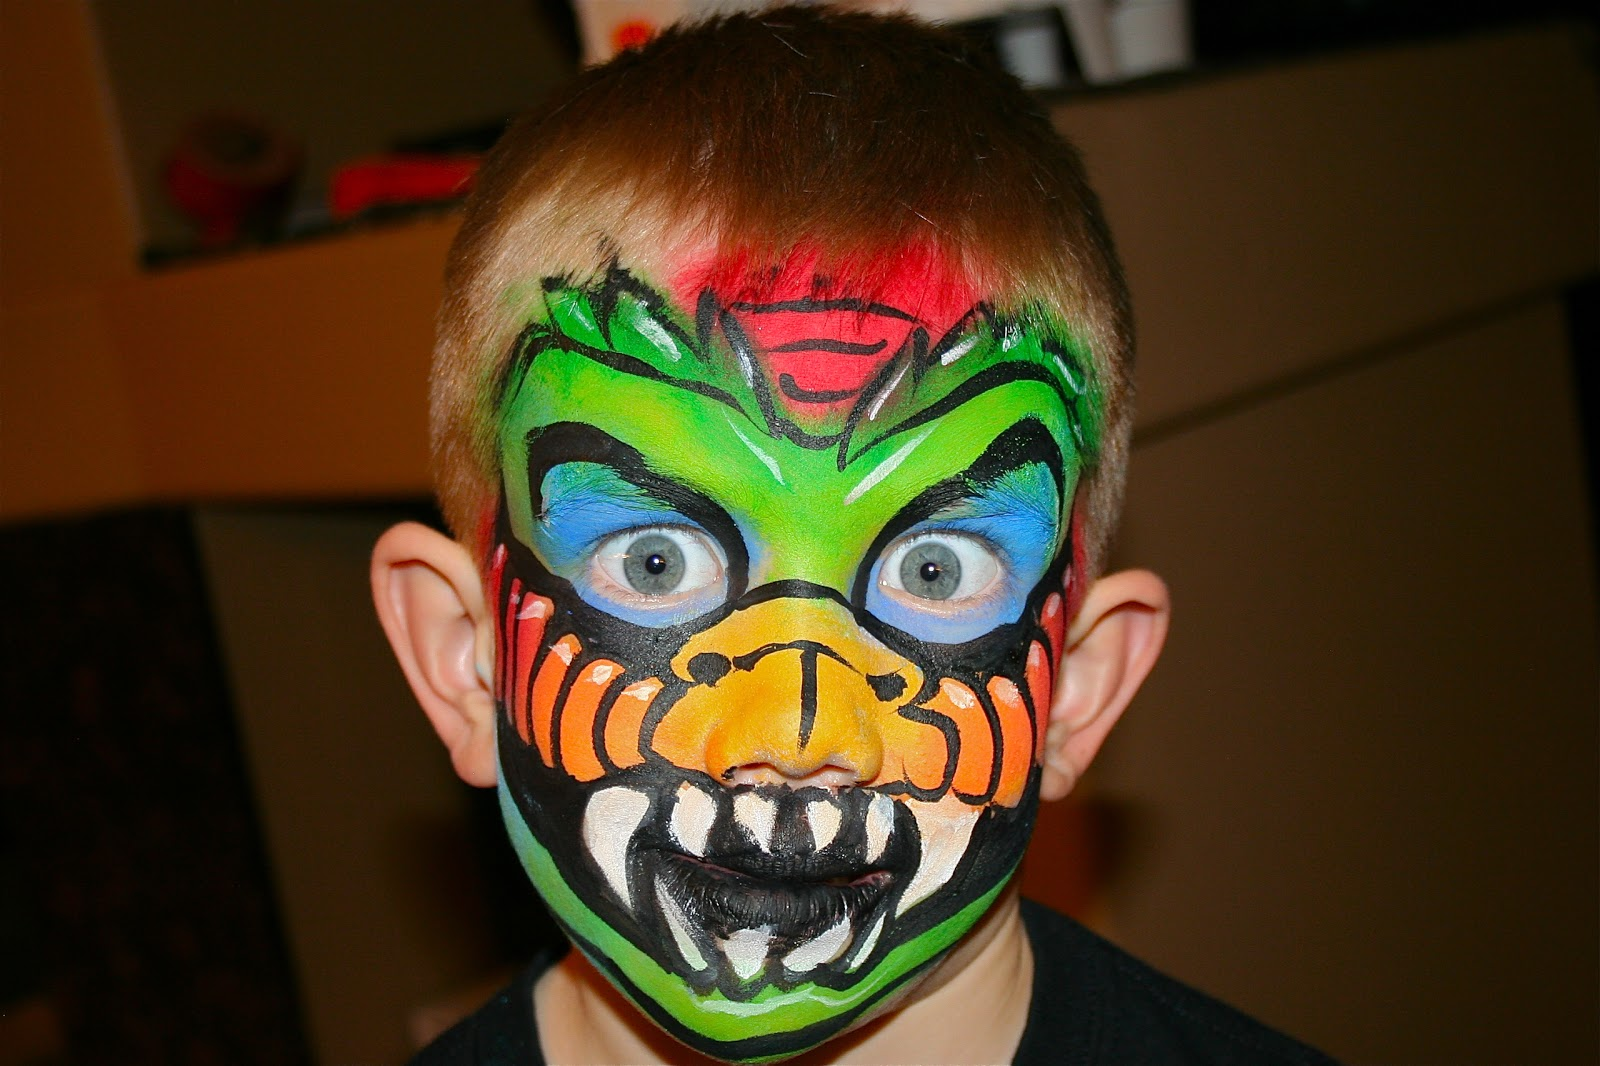 Snappy face and body art painting face paint for halloween costumes solutioingenieria Choice Image